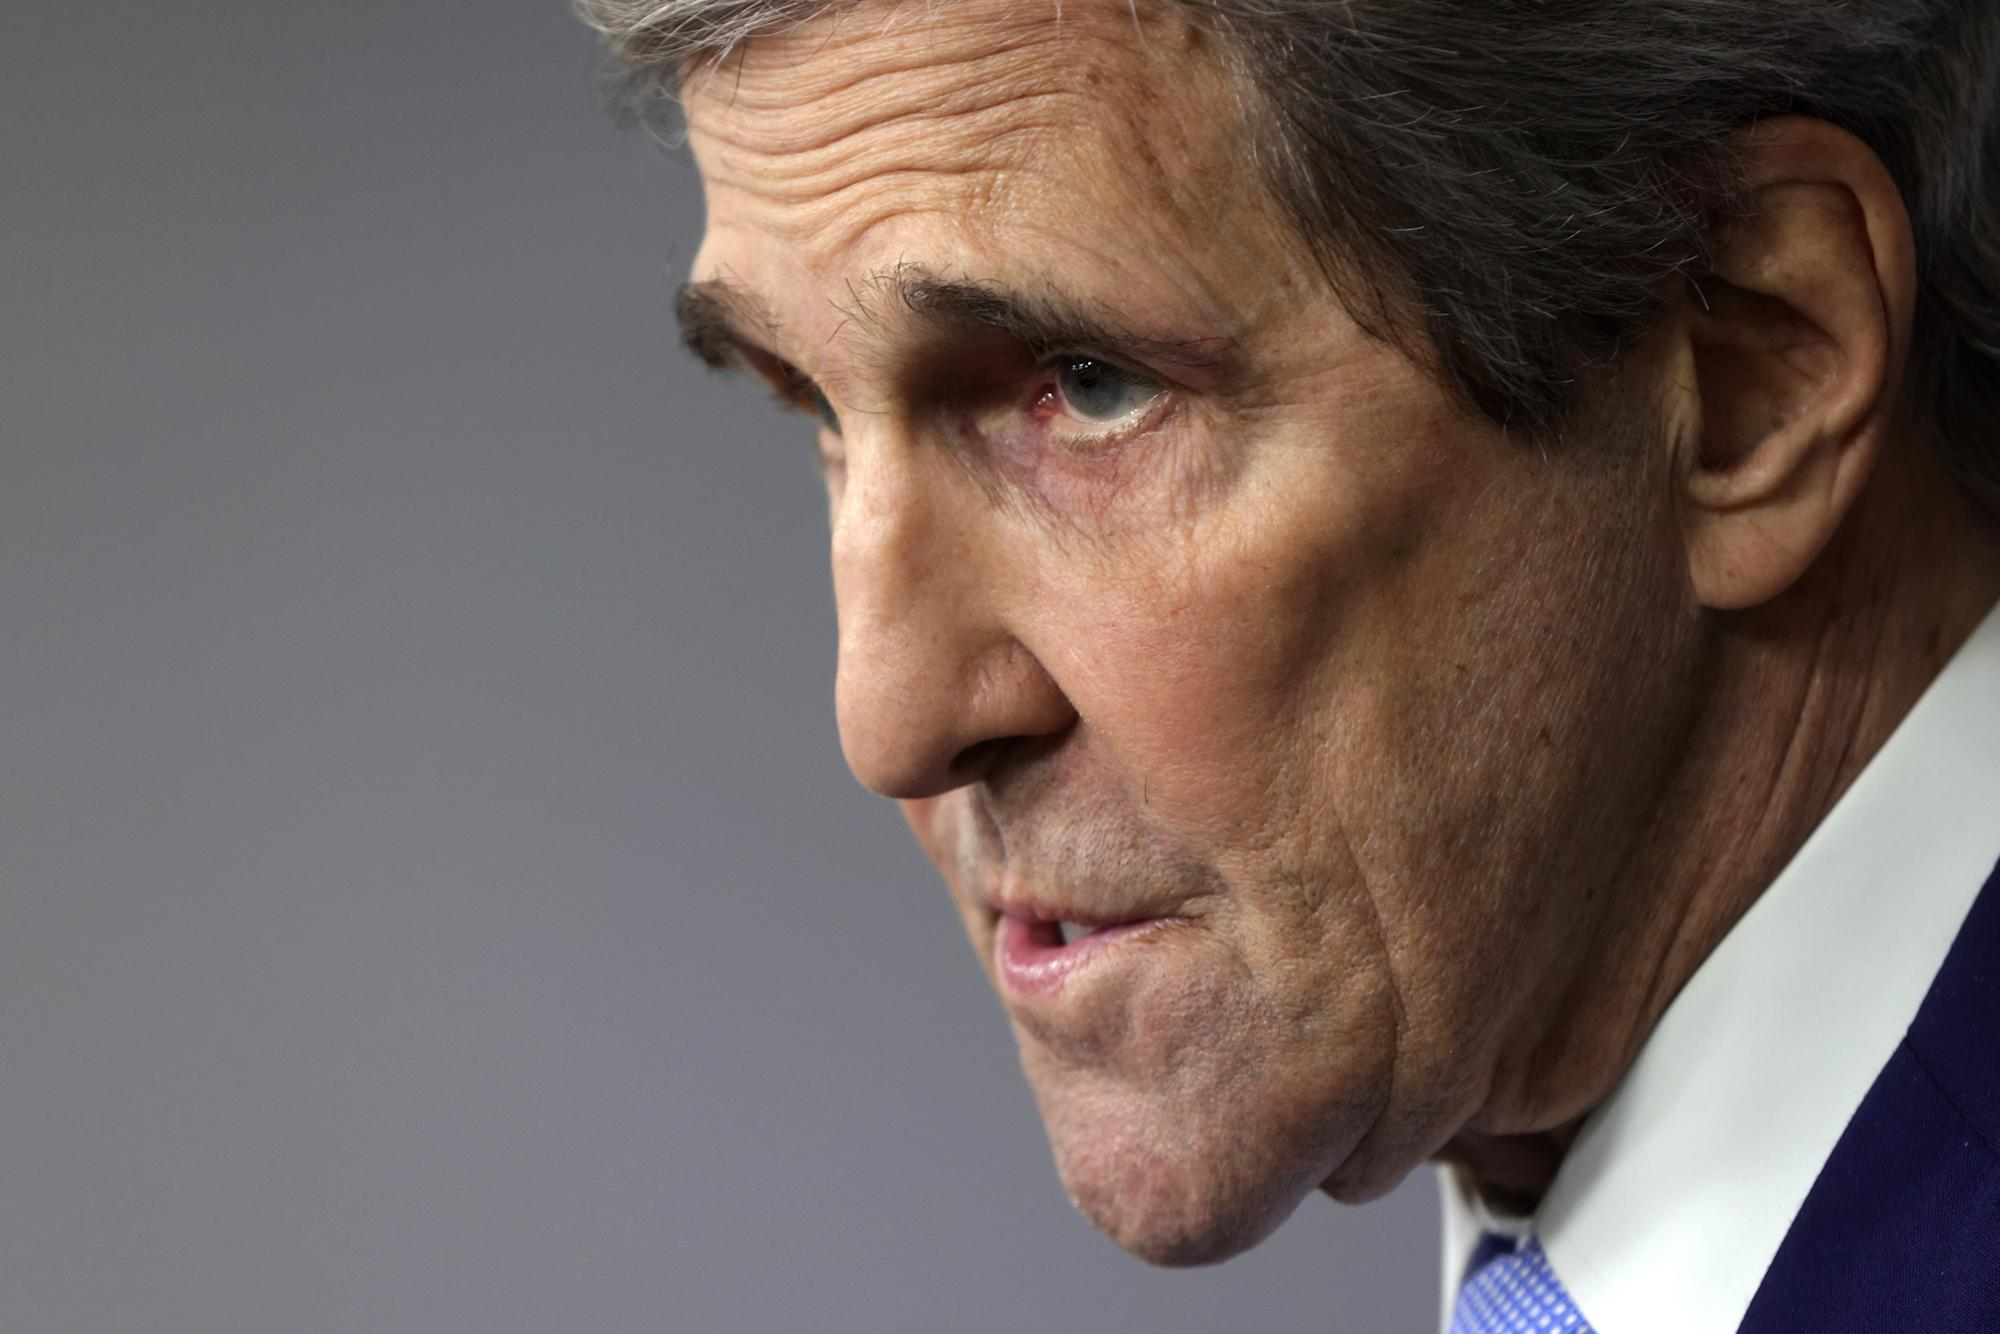 John Kerry ridiculed for saying 50% of carbon reductions 'will come from as-yet-uninvented technologies'